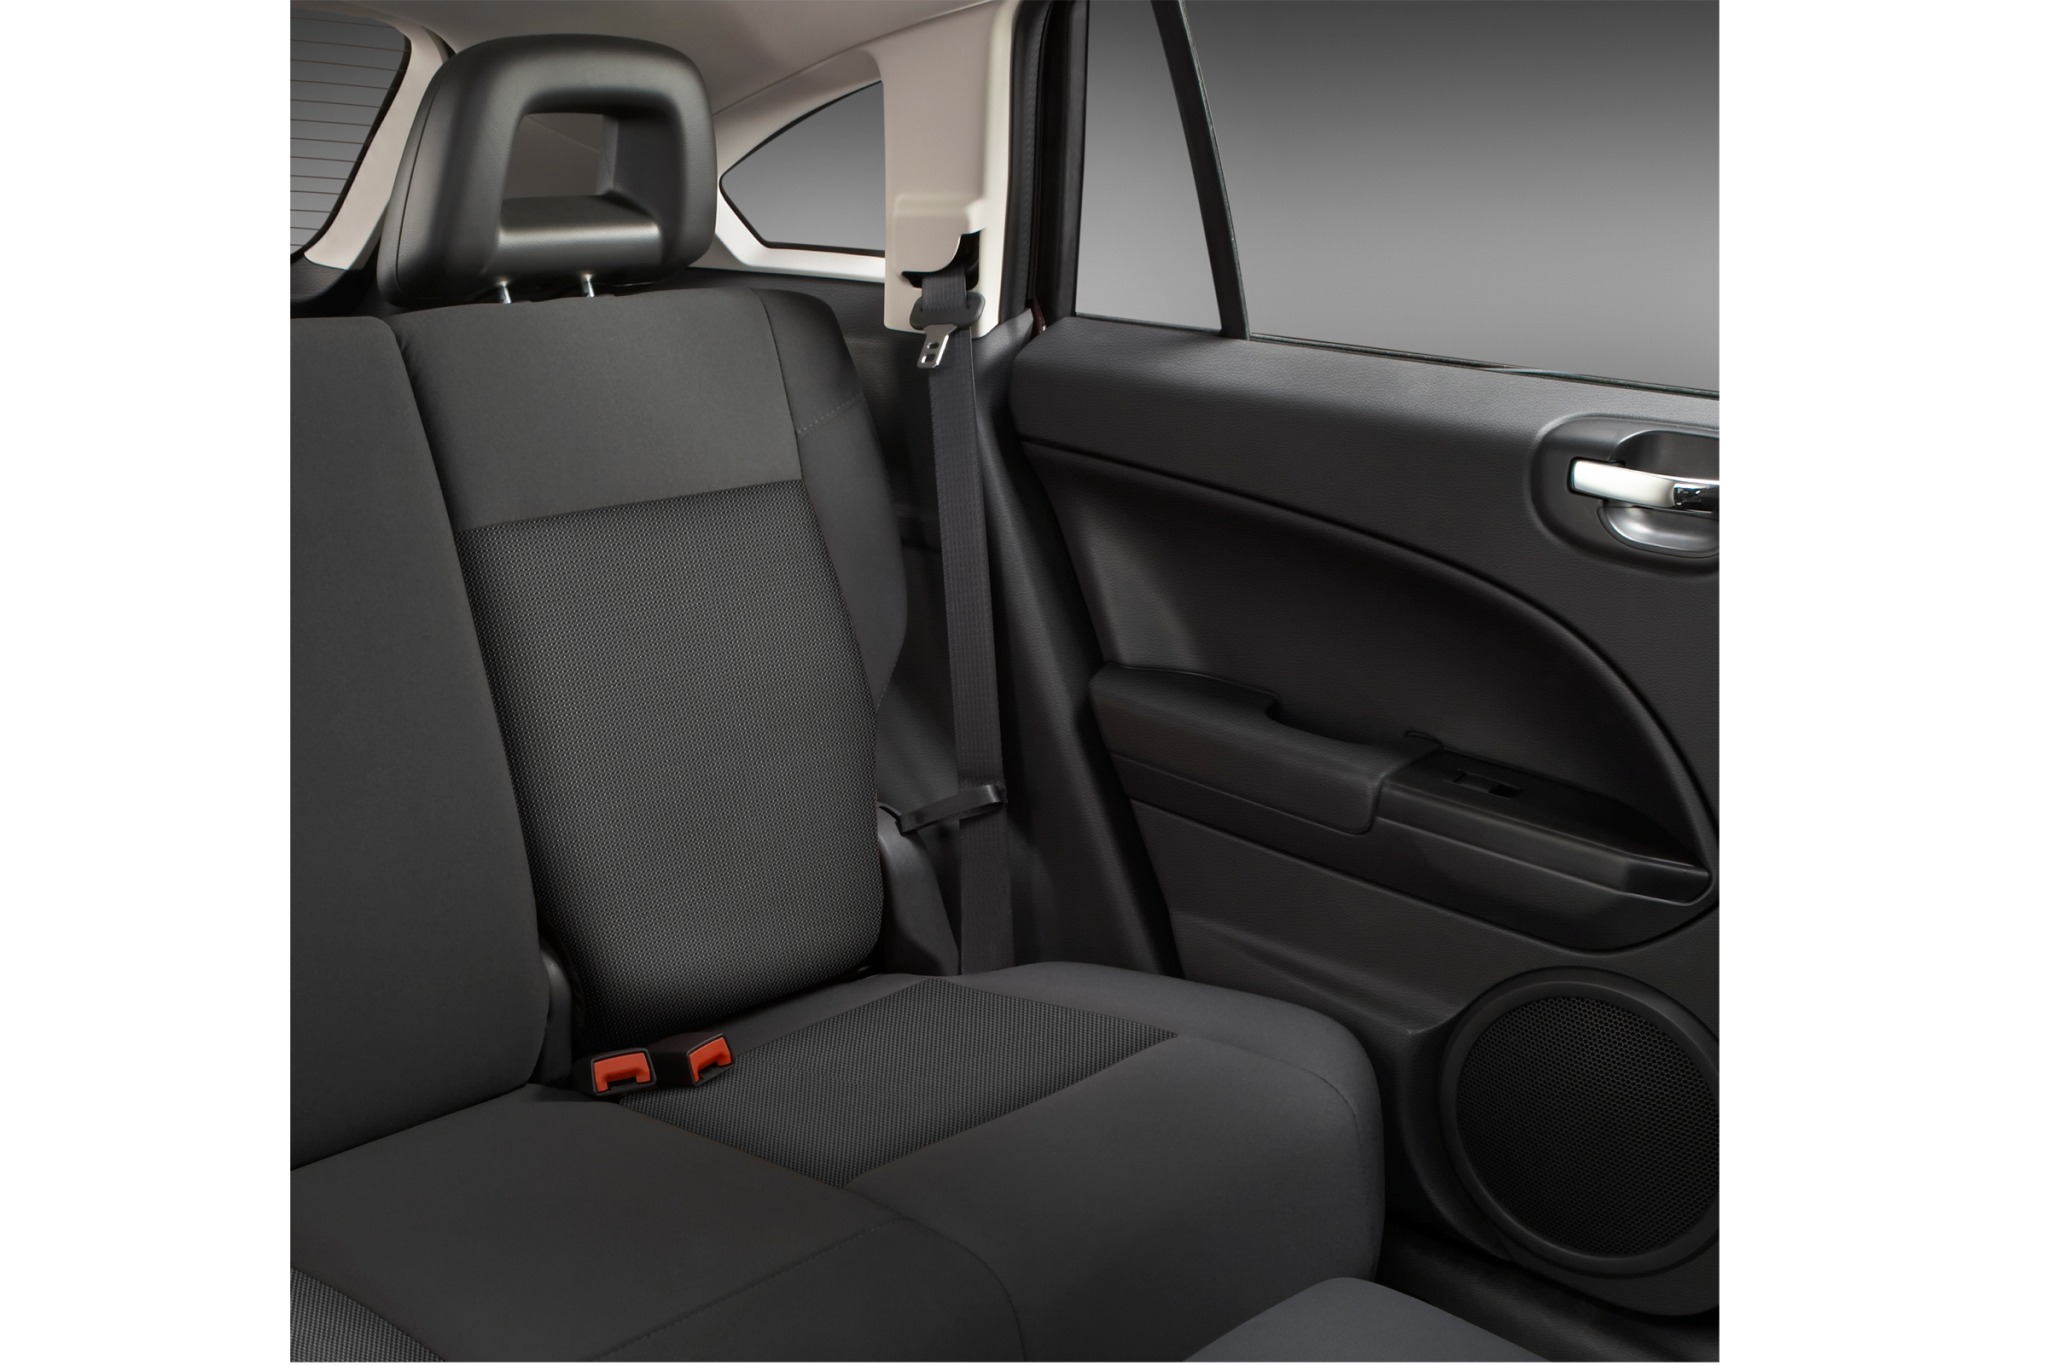 2010 Dodge Caliber R/T Sh interior #5